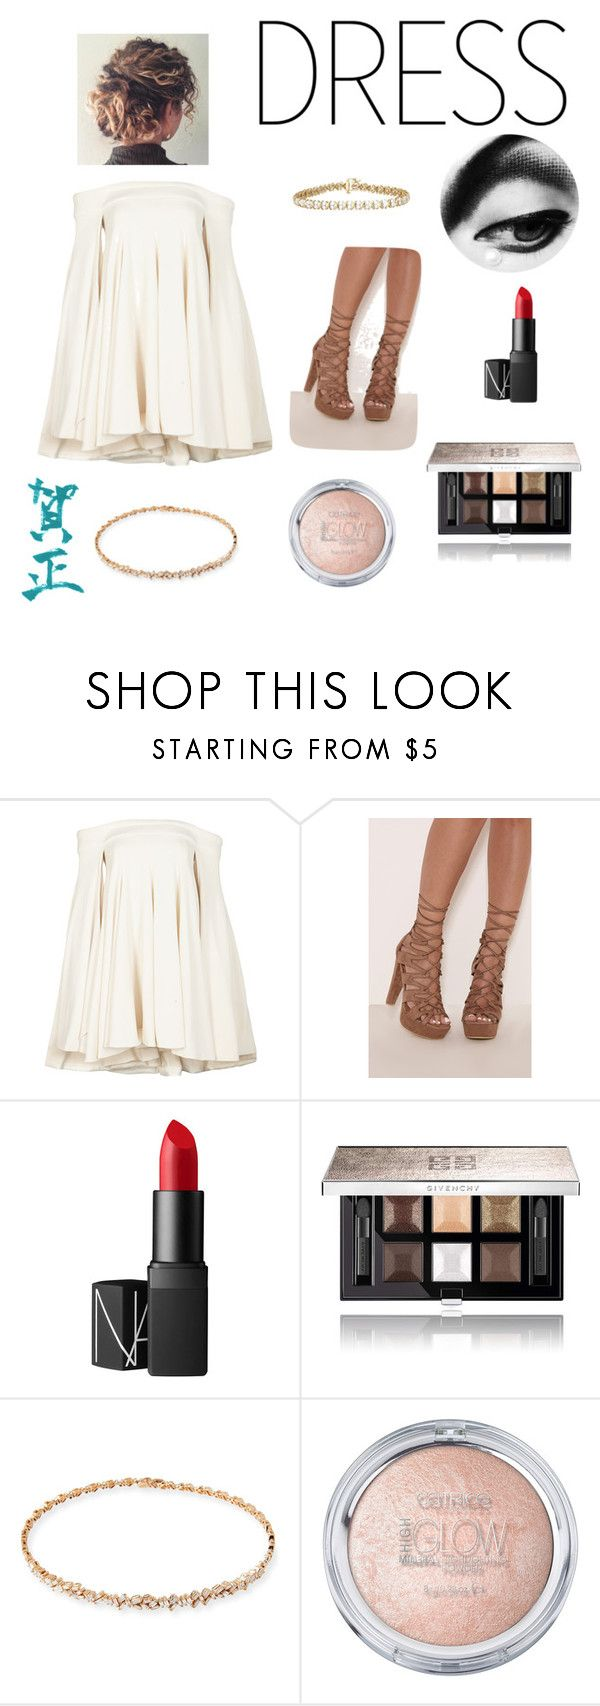 """""""i love god more than kanye luvs kanye"""" by queen-vic ❤ liked on Polyvore featuring Brandon Maxwell, NARS Cosmetics, Givenchy and Suzanne Kalan"""